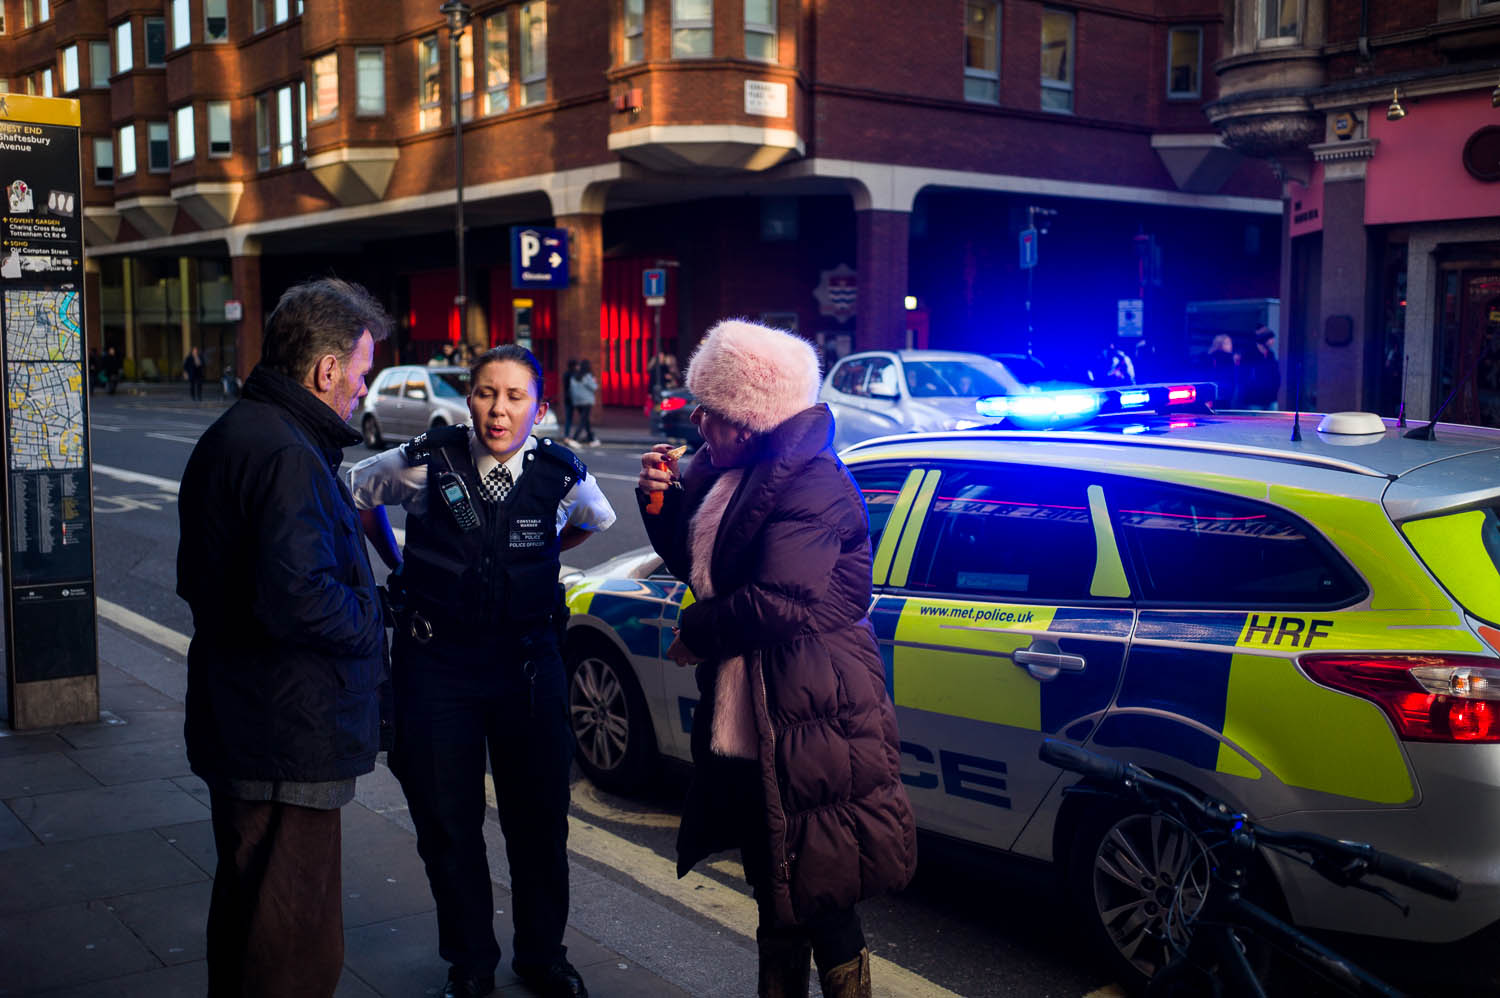 A London police officer chatting with a woman eating orange slices in a furry hat